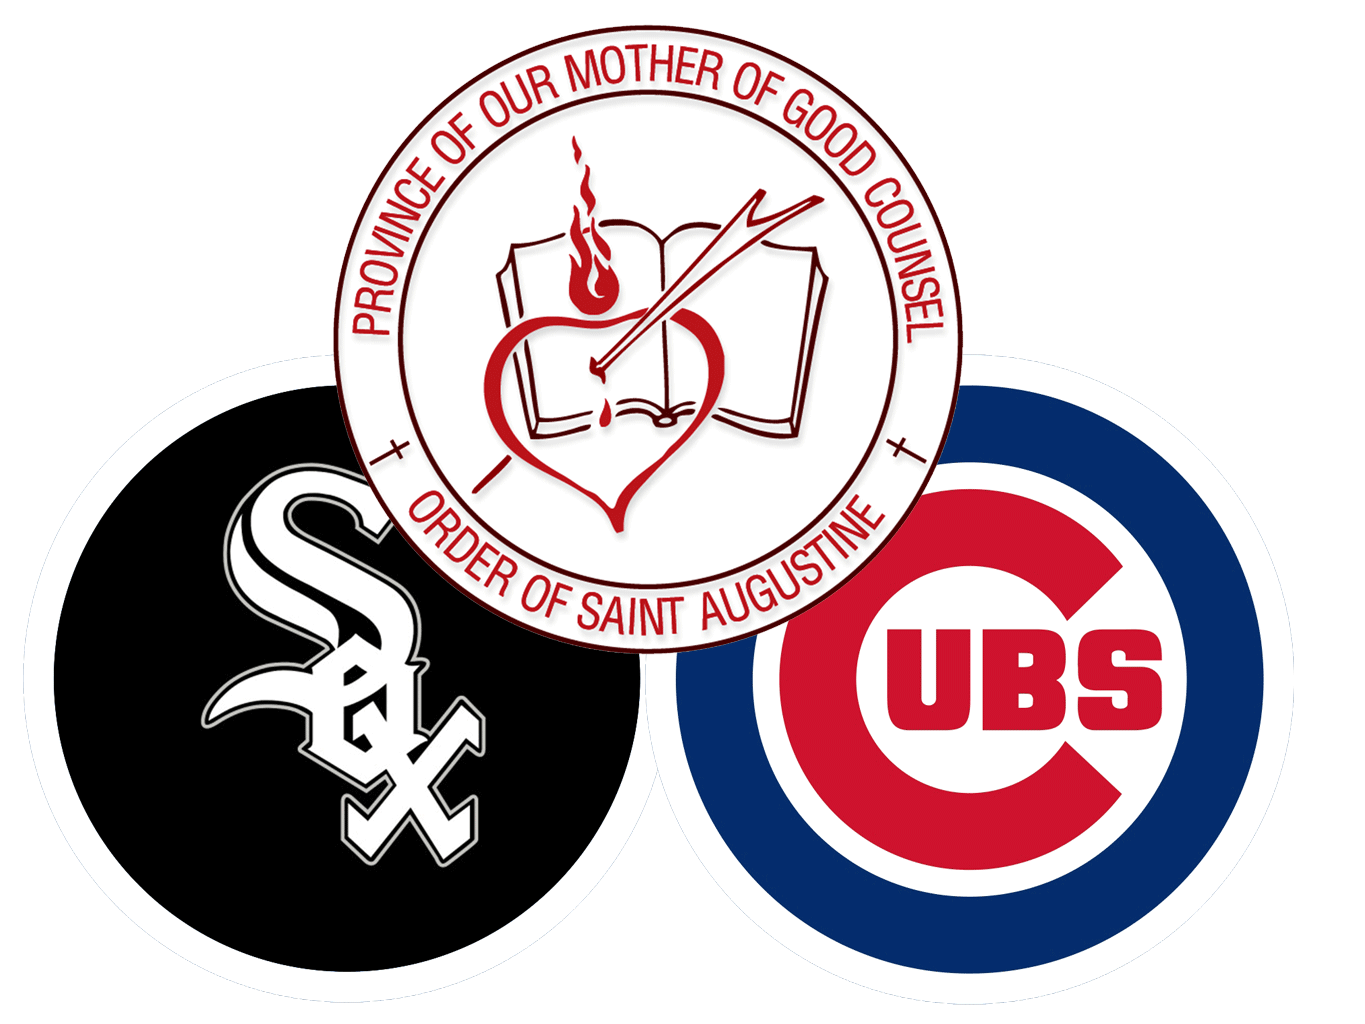 augustinians white sox at cubs